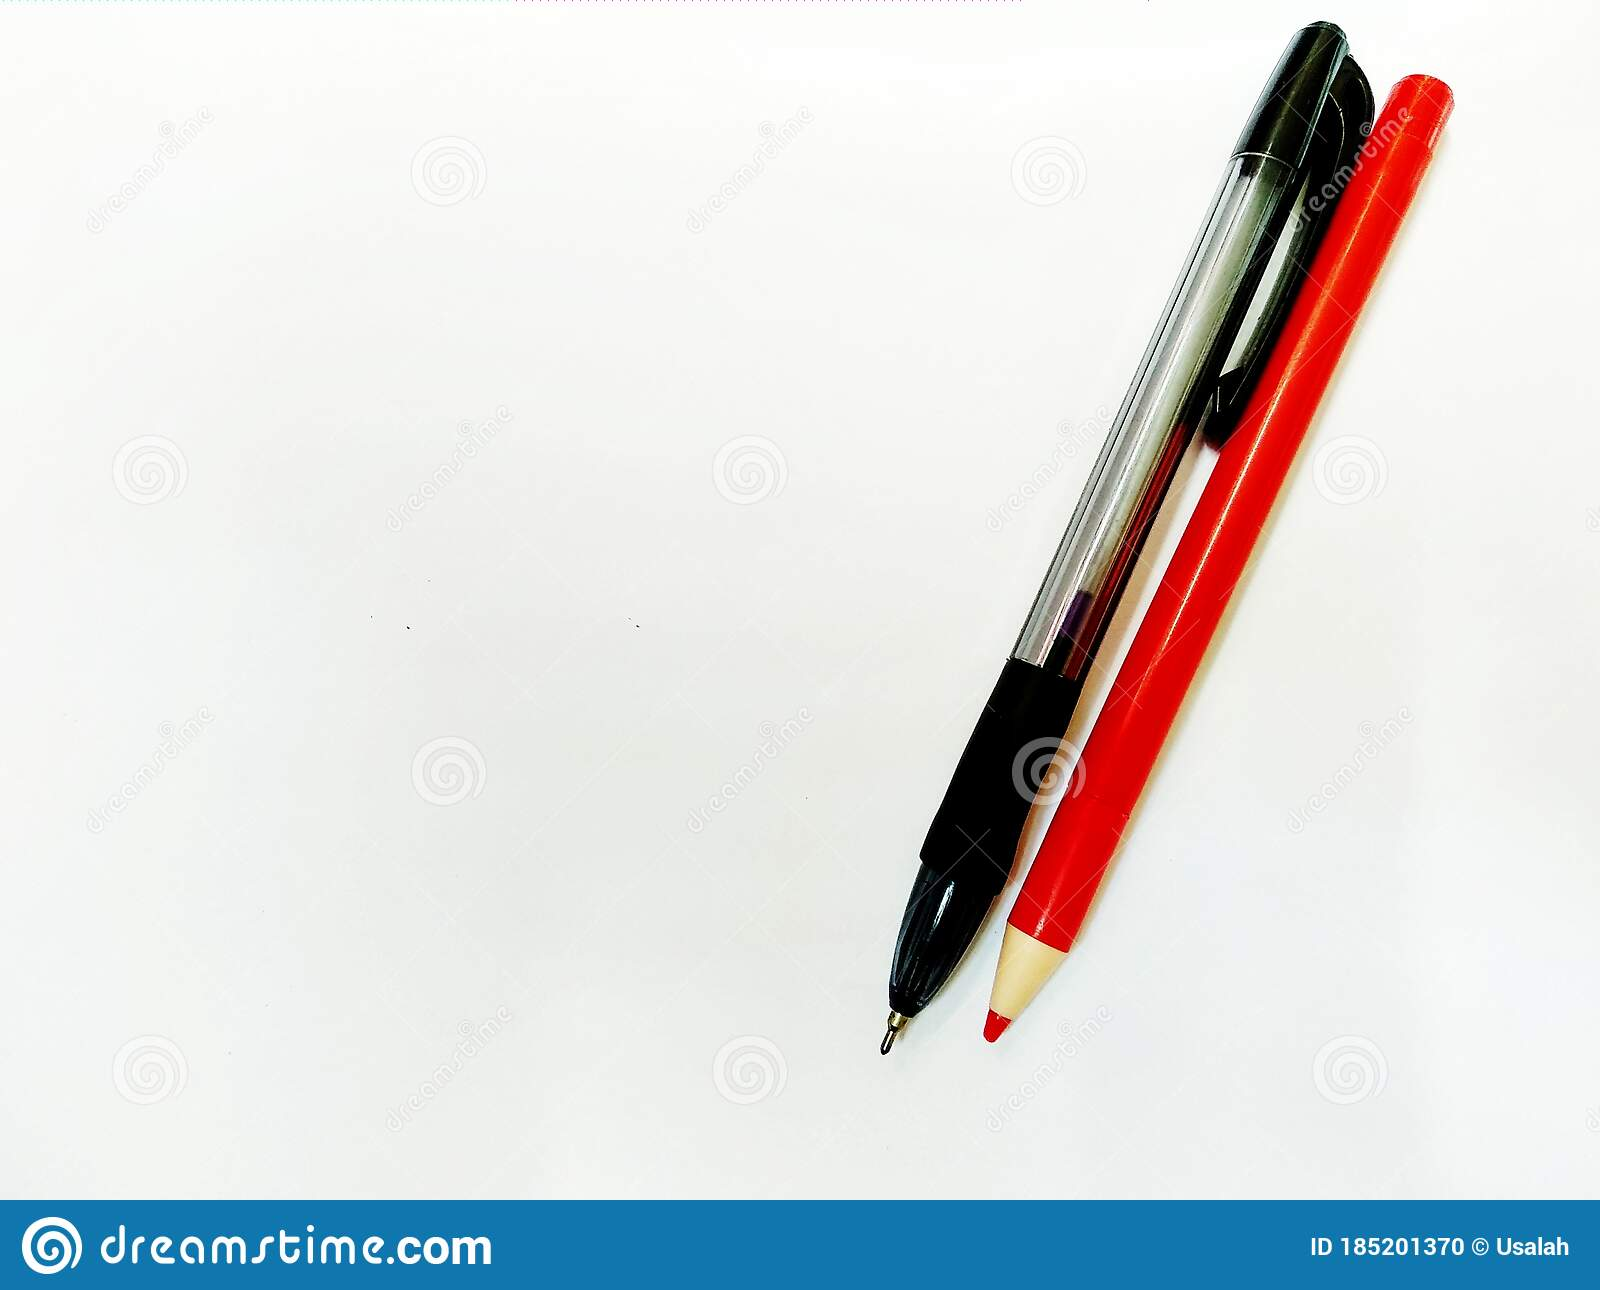 759 Educational Wallpaper Photos Free Royalty Free Stock Photos From Dreamstime